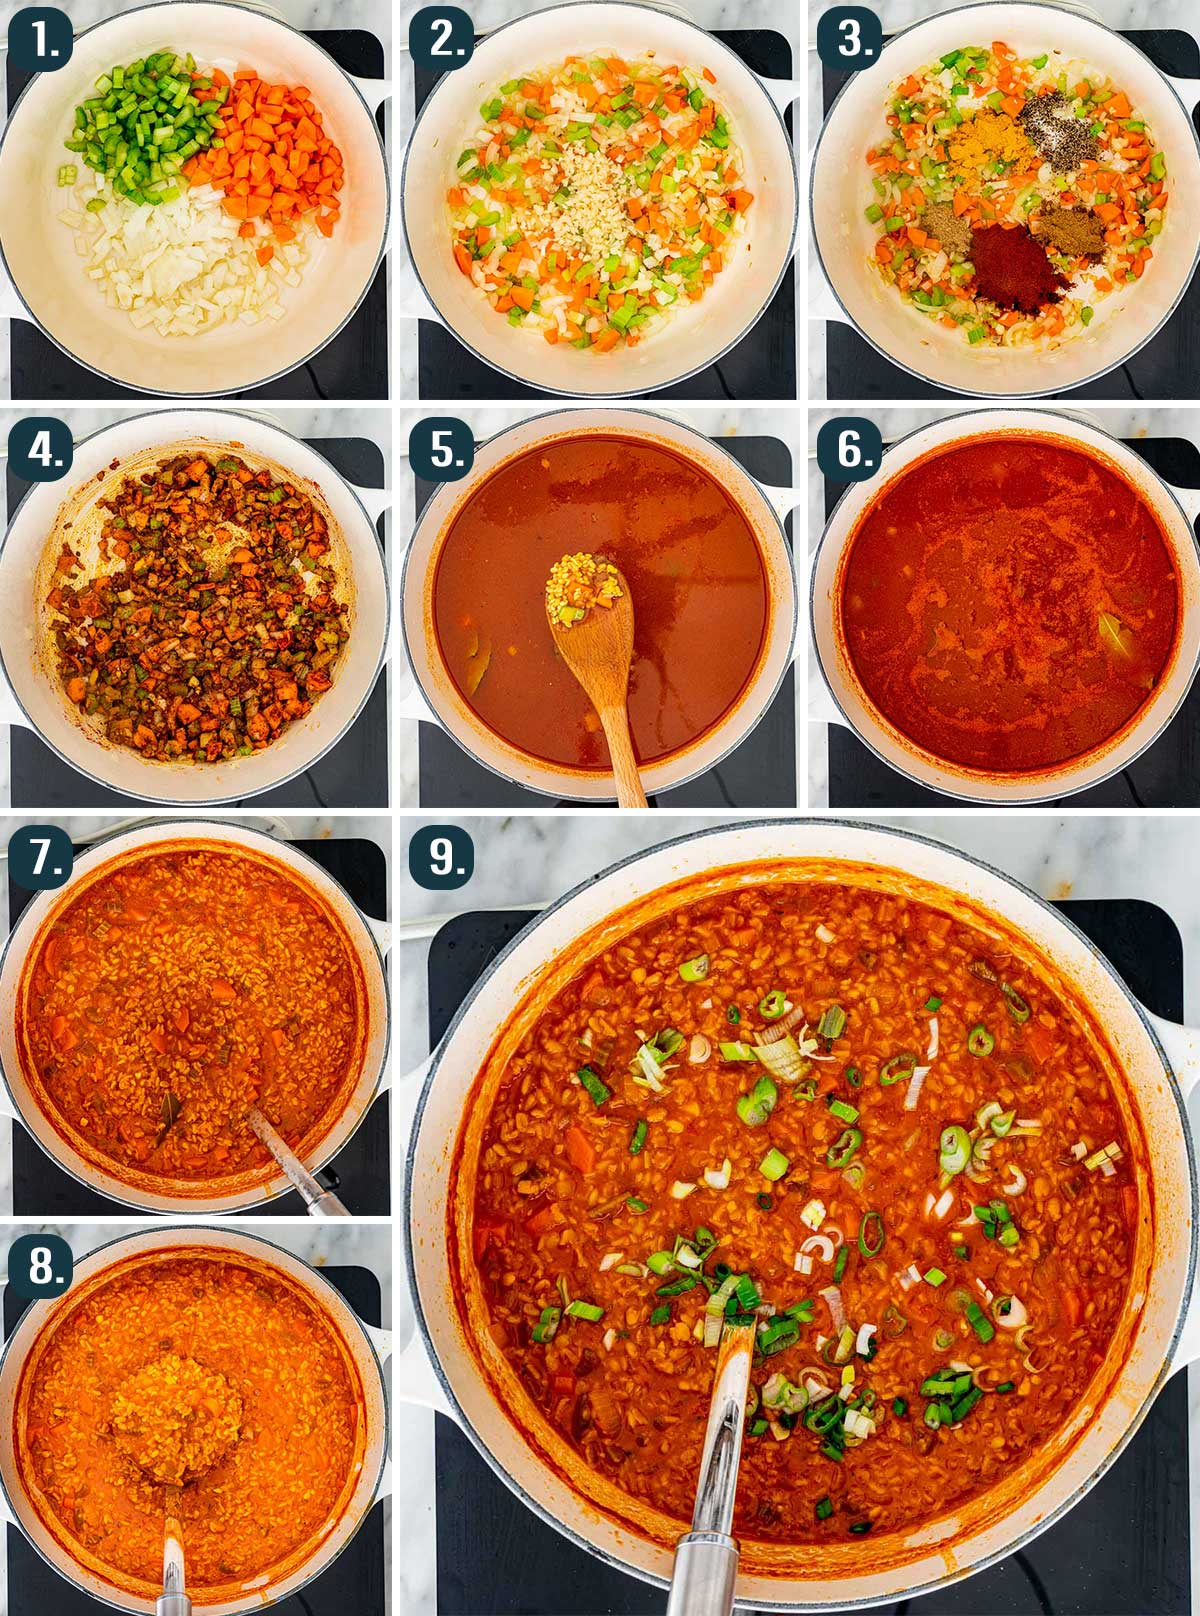 process shots showing how to make lentil soup